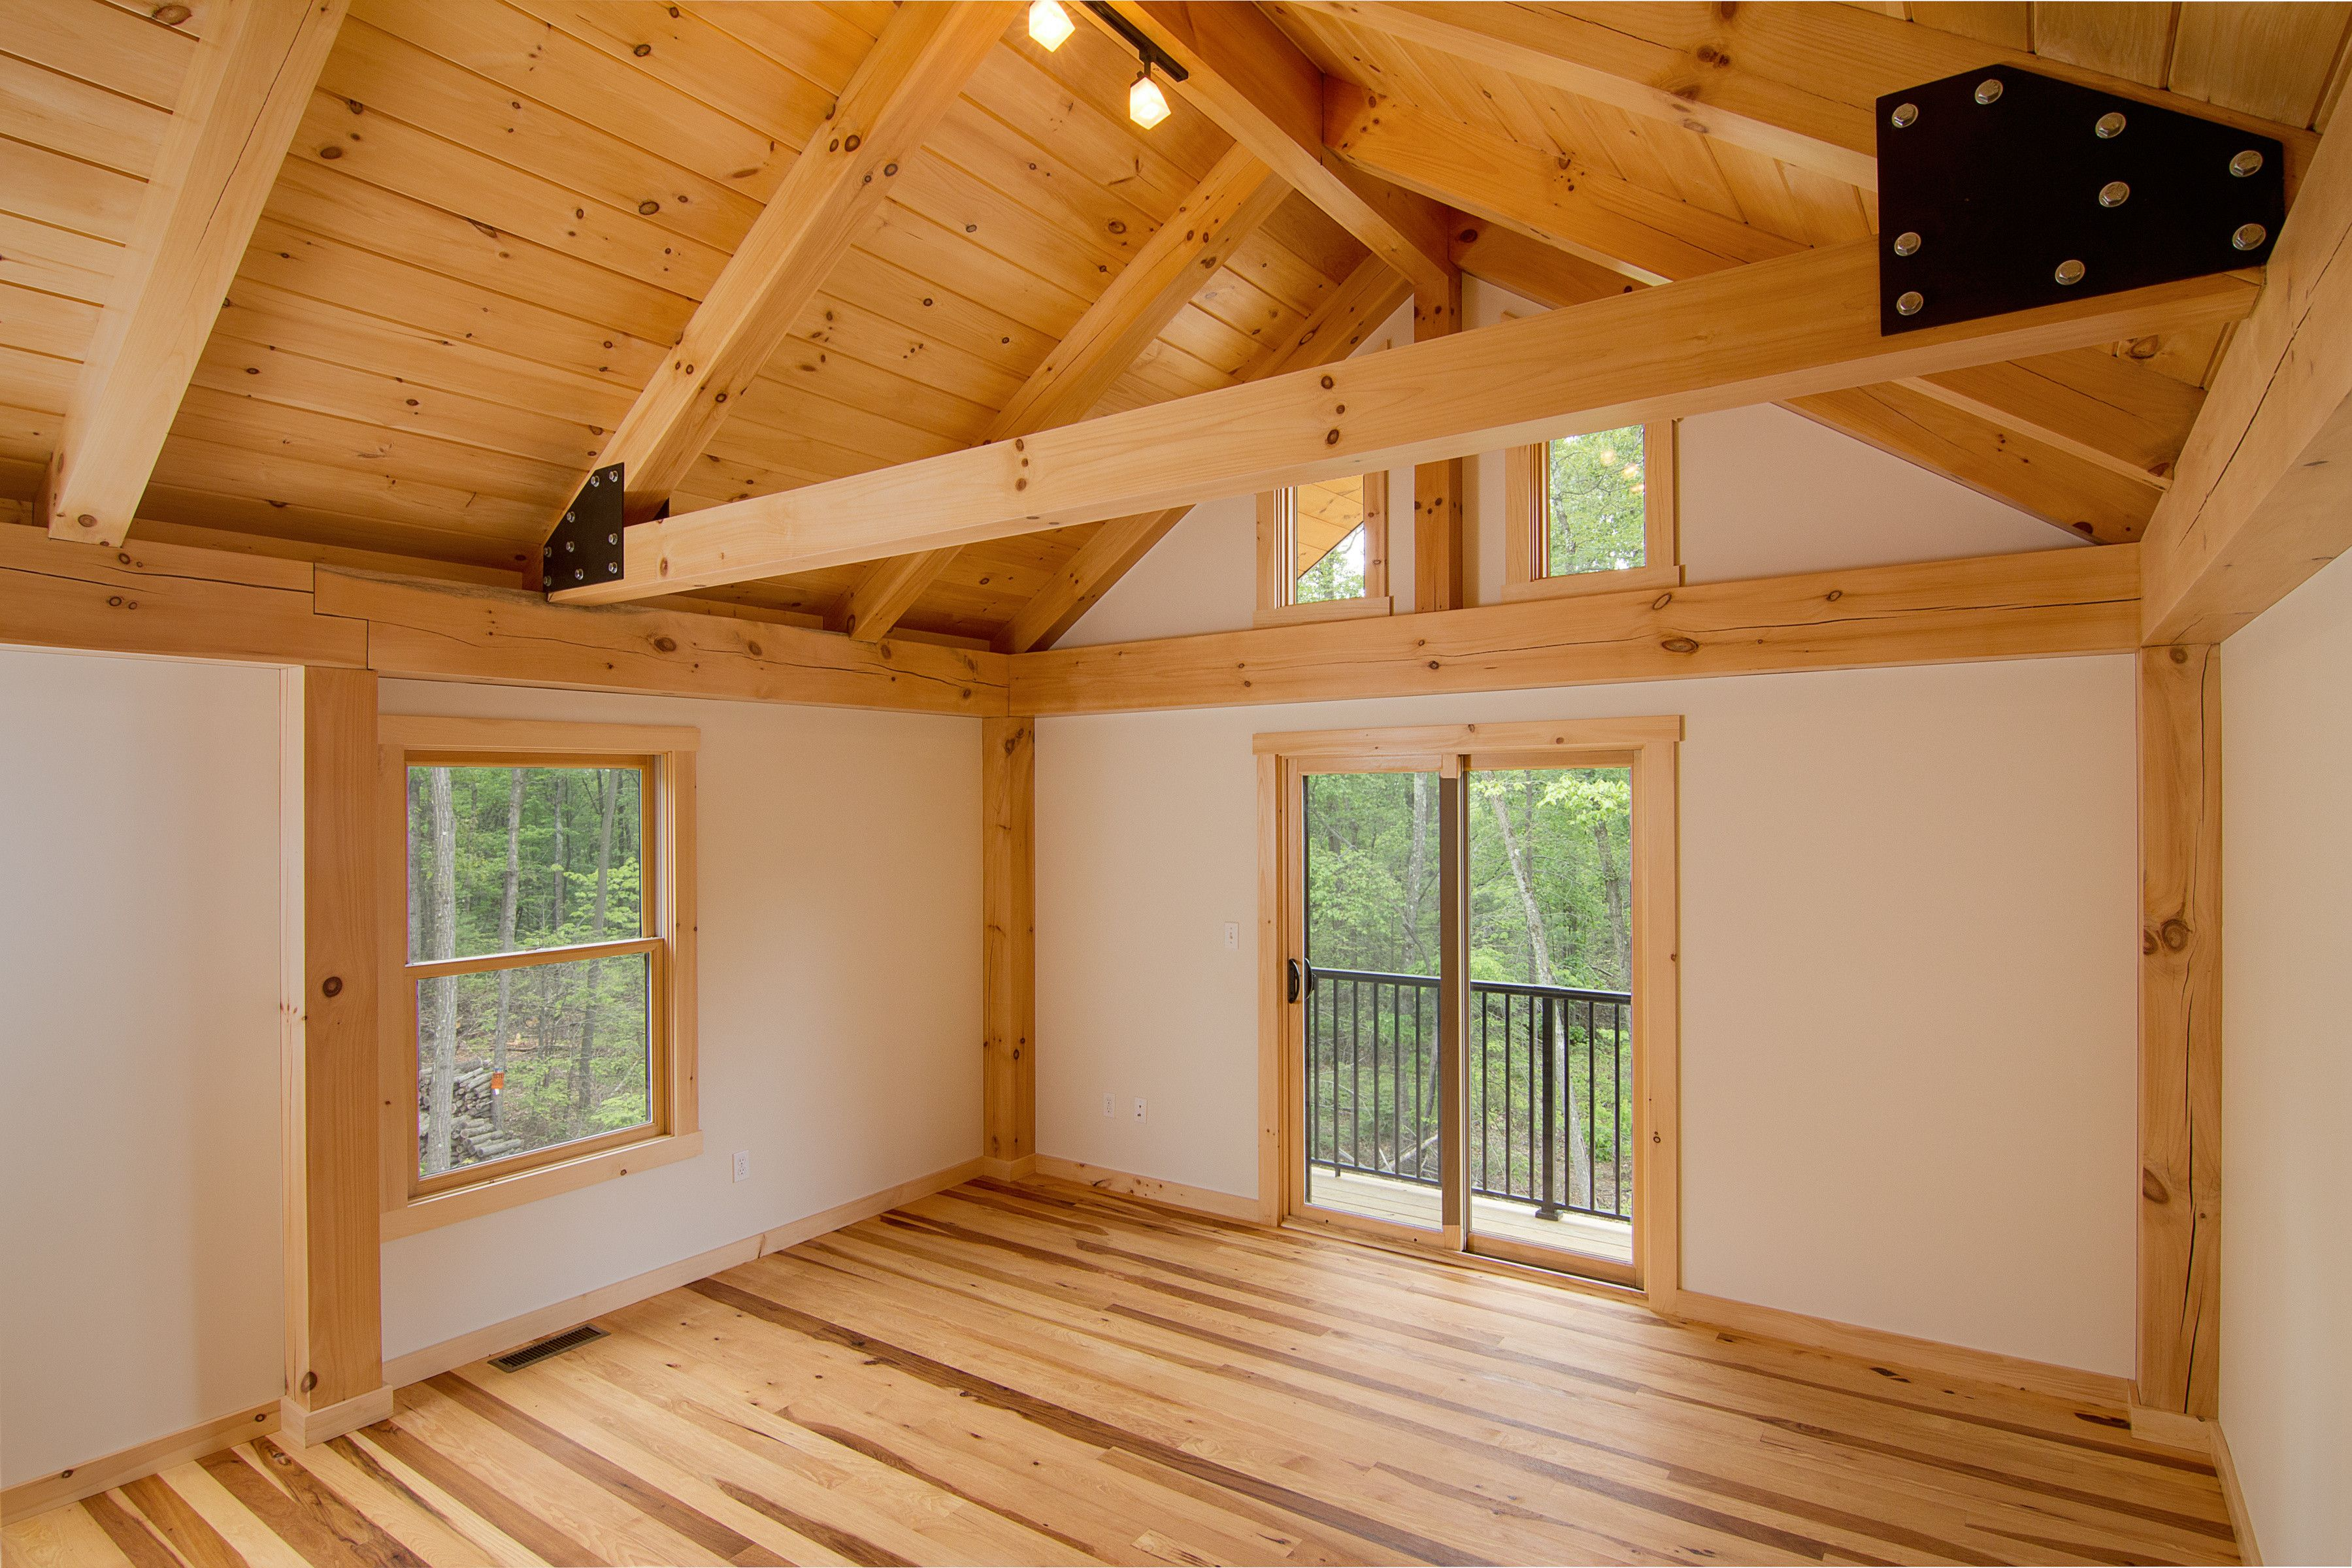 Introducing our NEW Custom Timber Frame Home Product Line ...